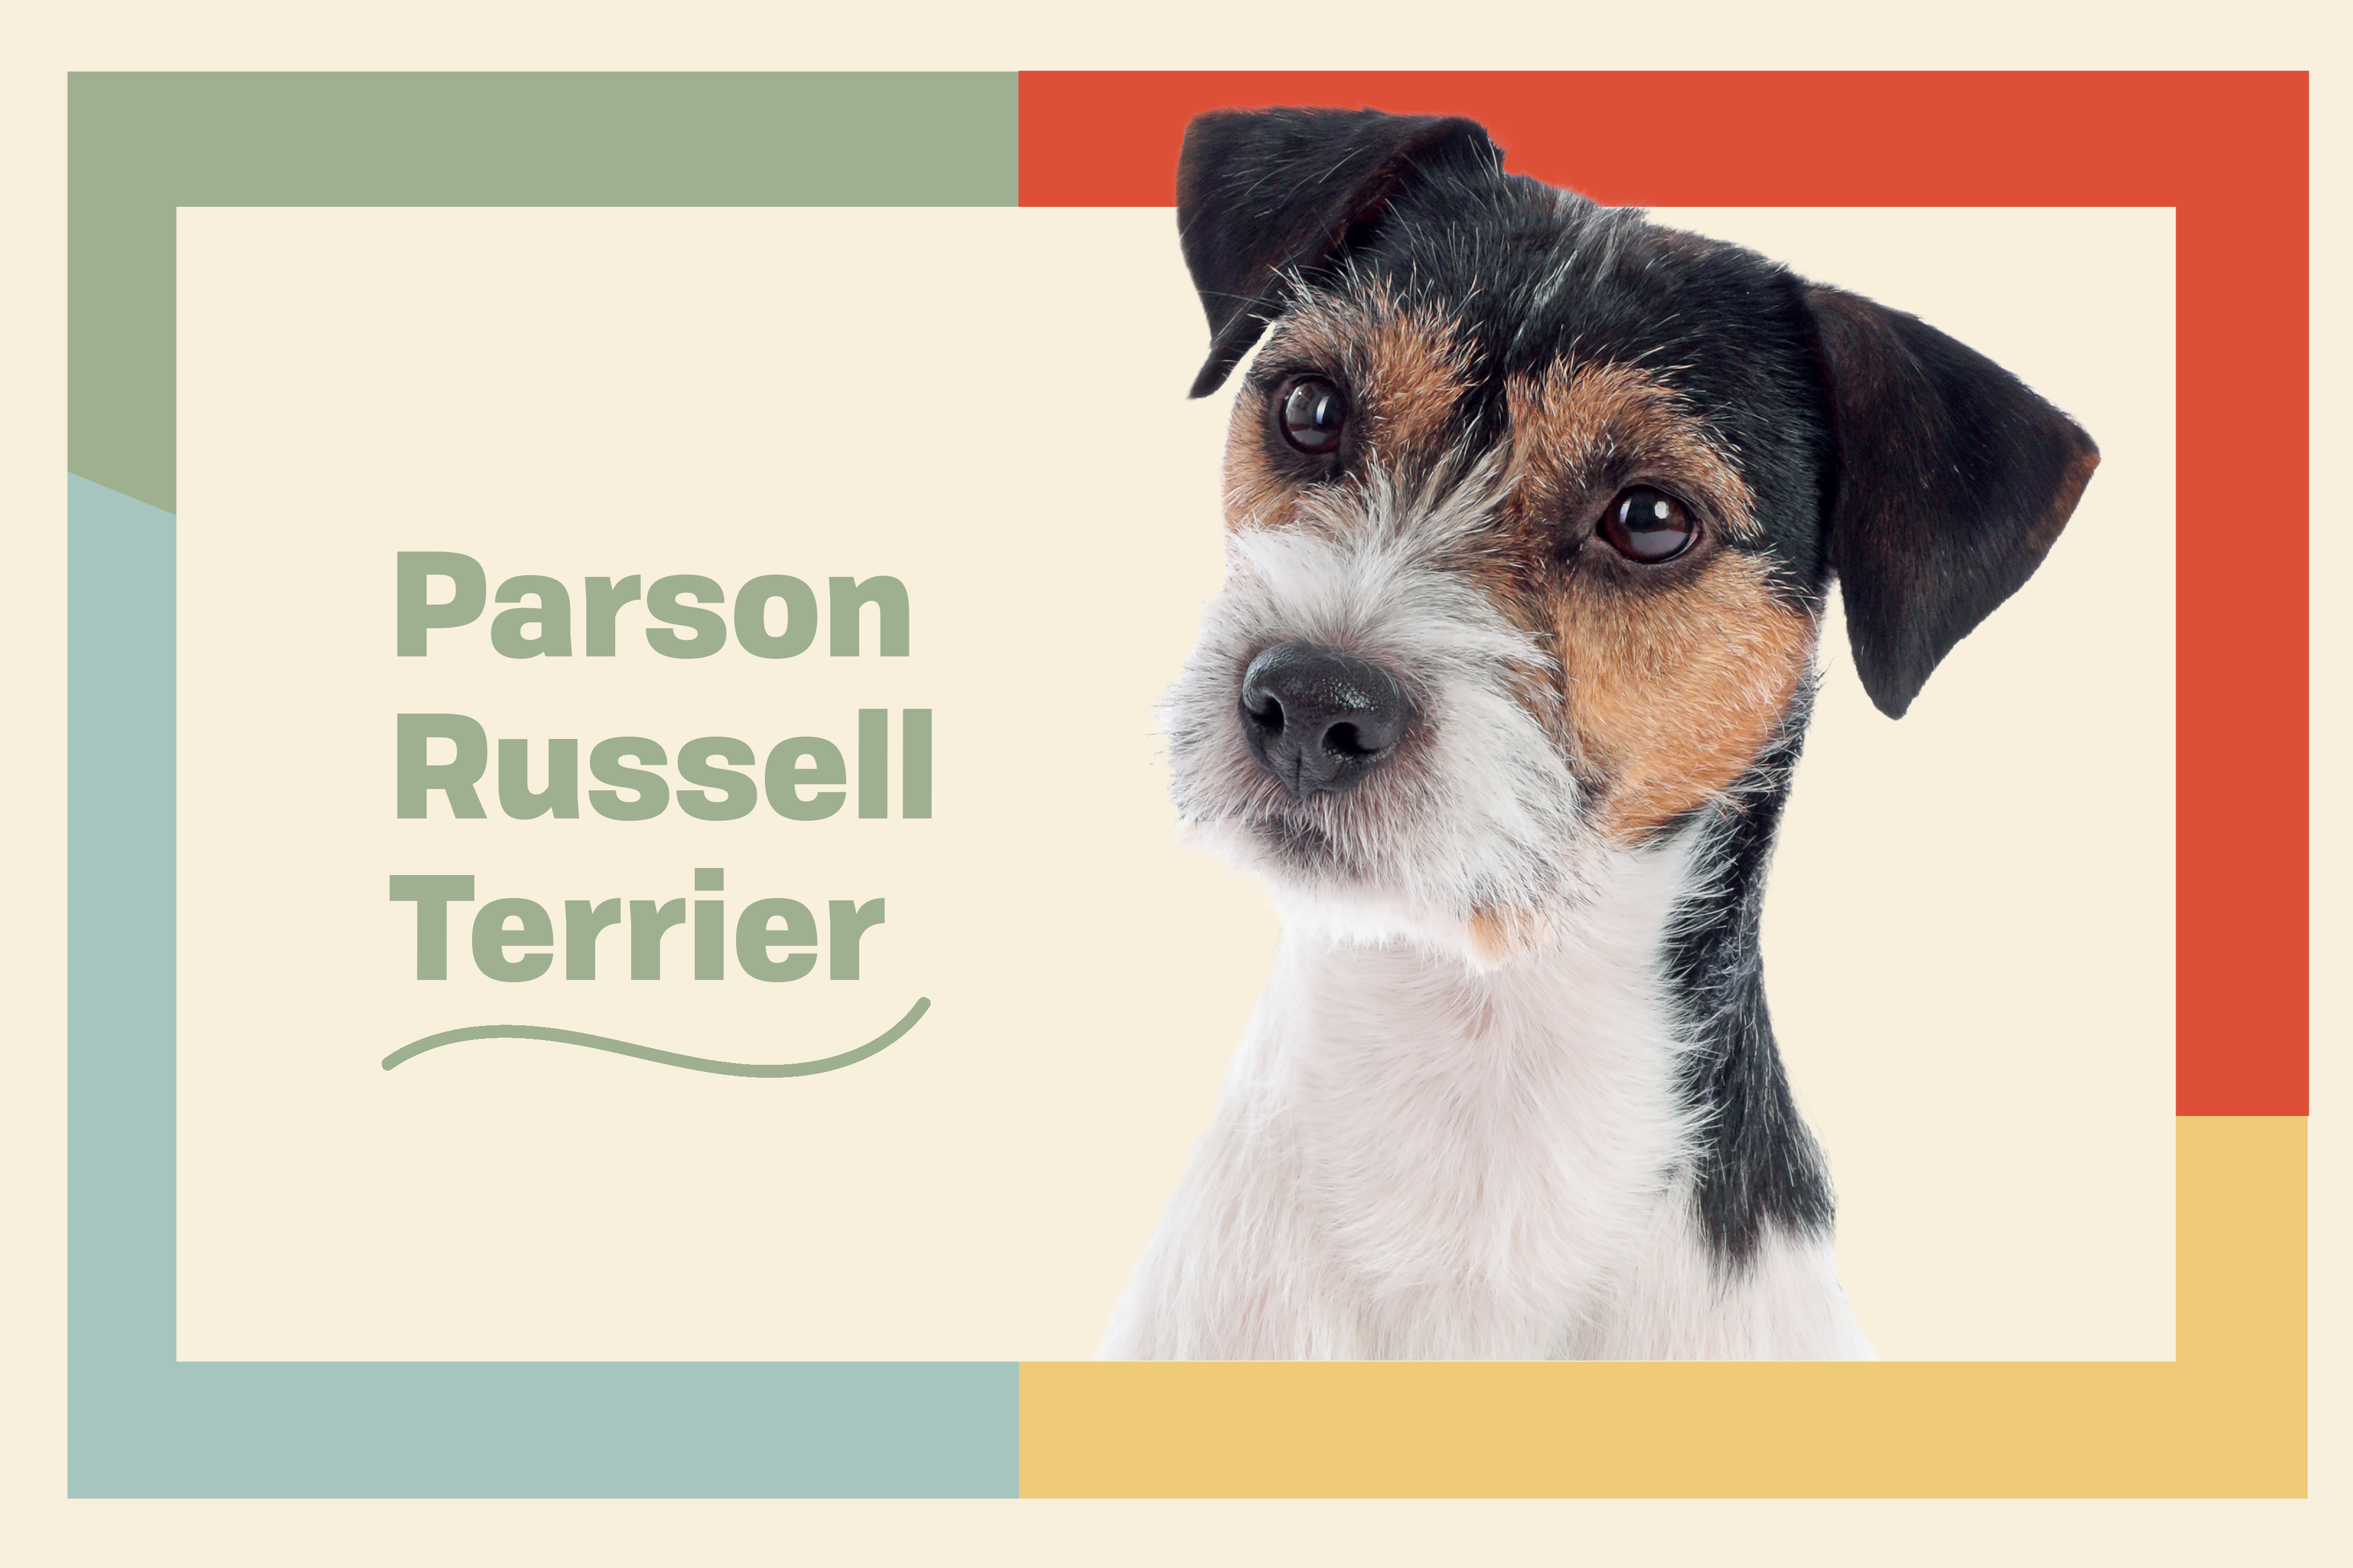 parson russell terrier dog breed profile treatment dog on illustrated background